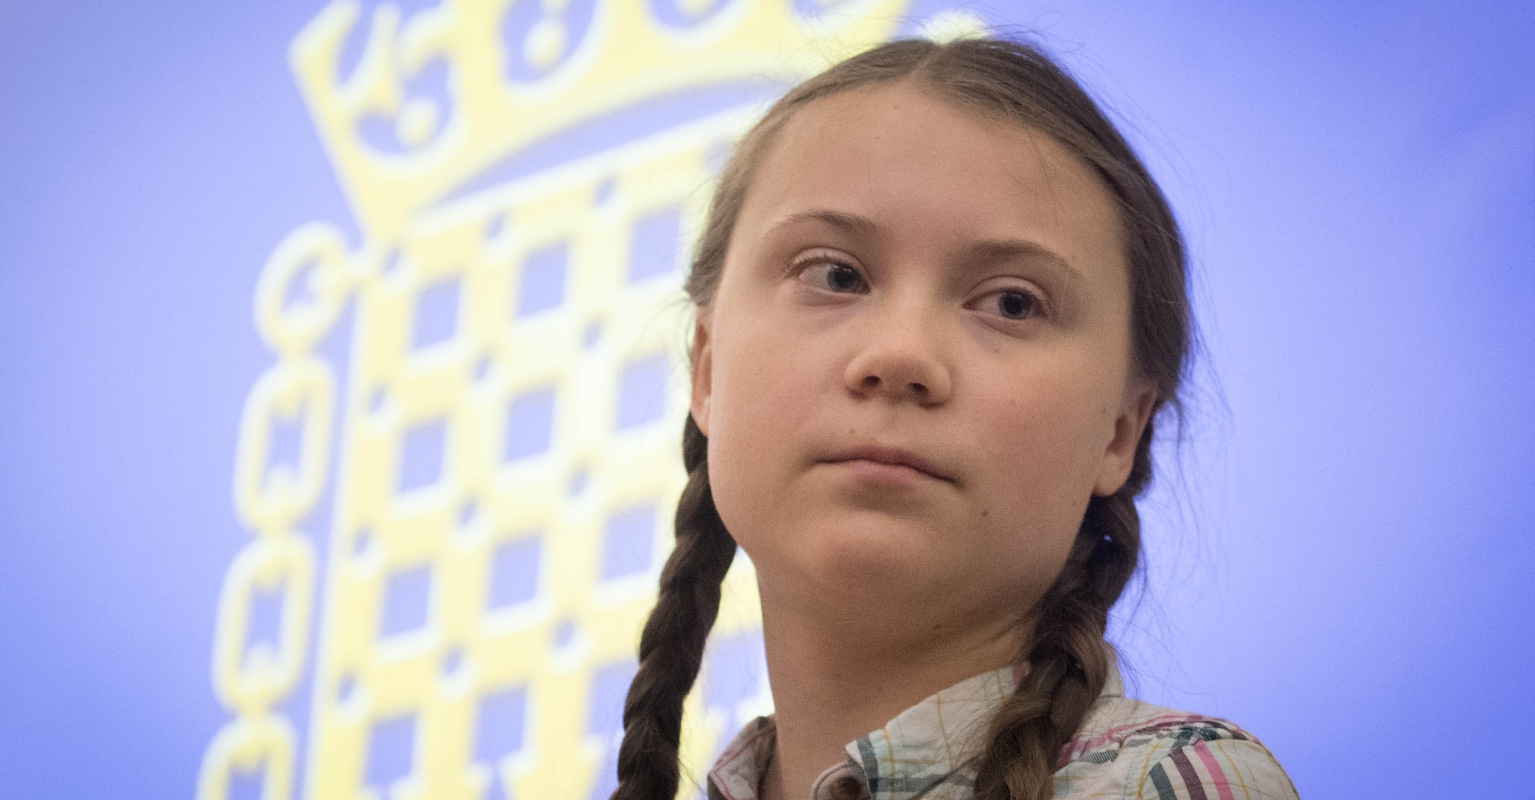 Greta Thunberg calls for 'change' as NASA declares 2020 hottest year on record